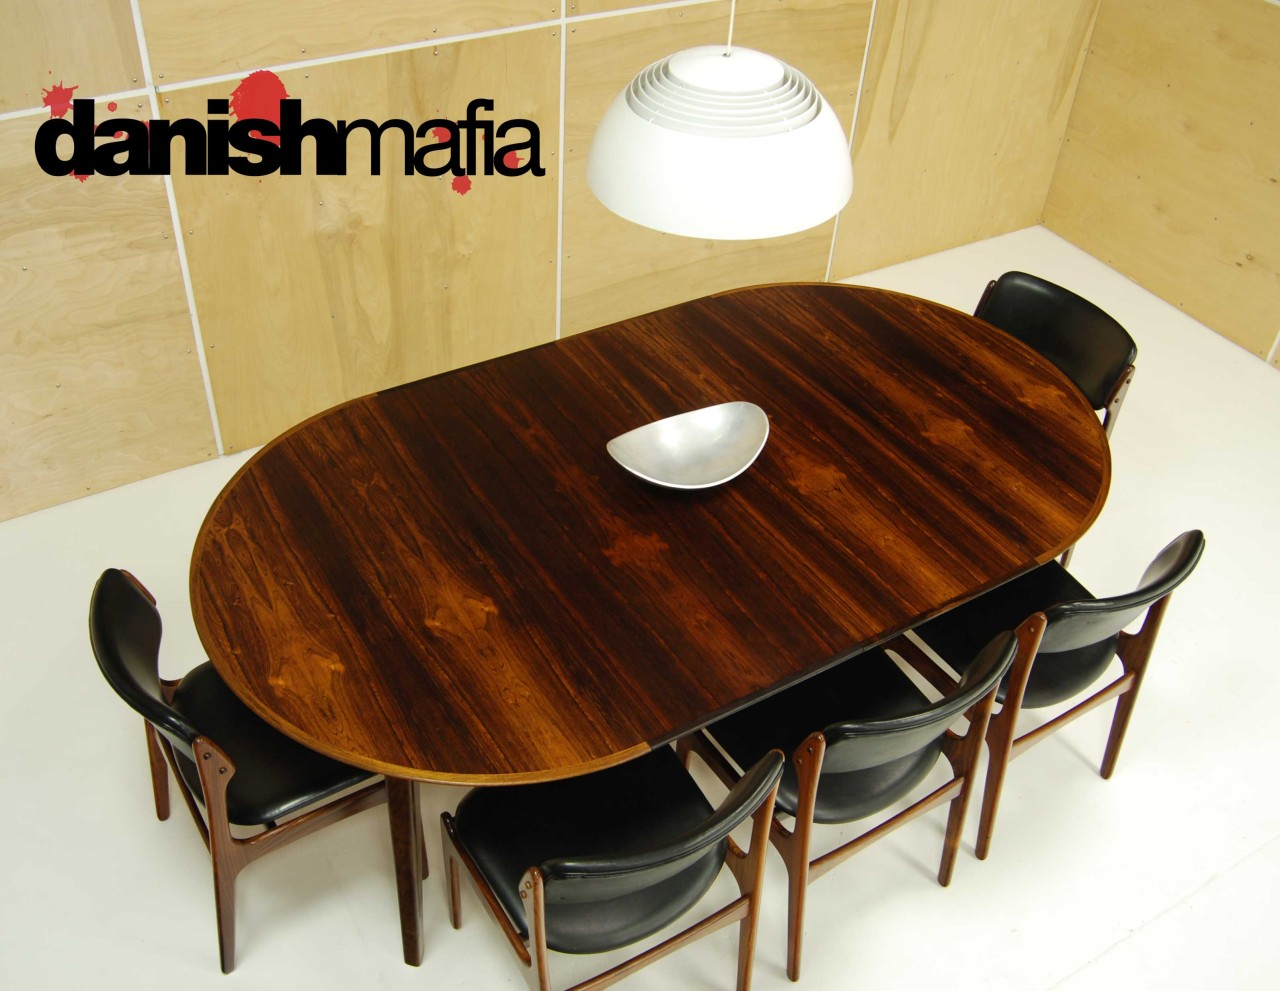 Details about 48 inch round formal duncan phyfe rosewood dining table - Captivating Rosewood Dining Room Photos 3d House Designs Veerle Us